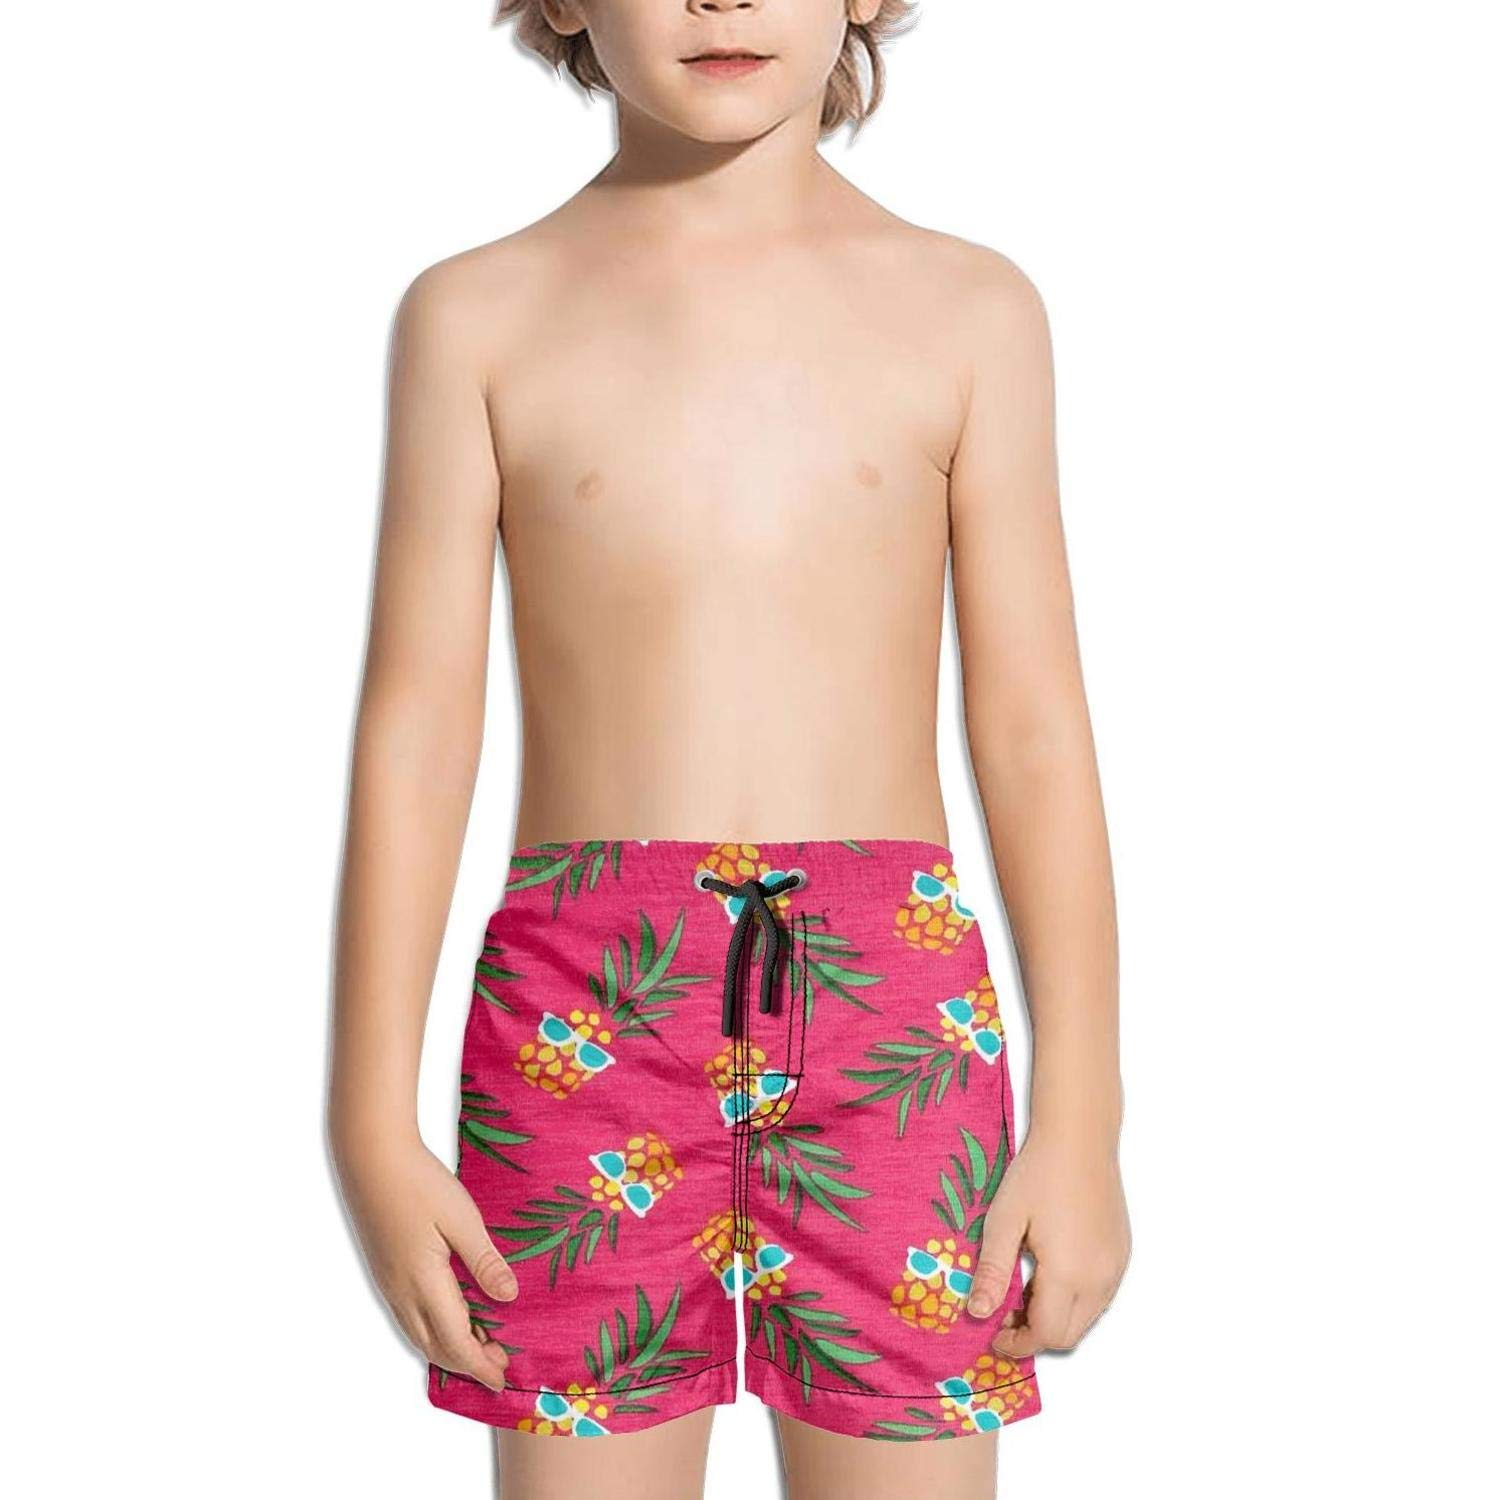 Ouxioaz Boys' Swim Trunk Pineapples with Glasses Pink Beach Board Shorts